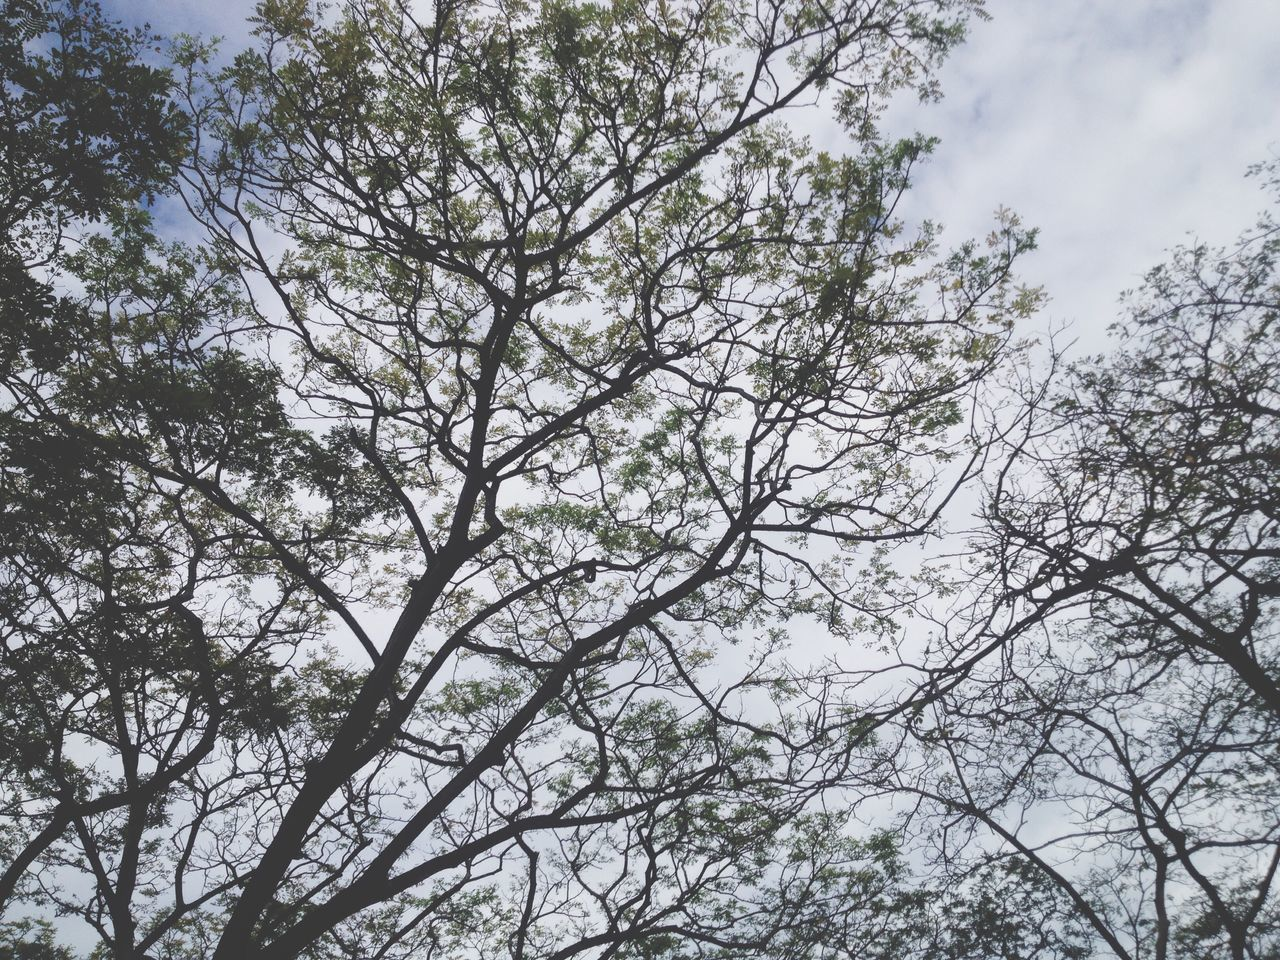 nature, tree, low angle view, branch, beauty in nature, outdoors, no people, tranquility, day, growth, sky, high